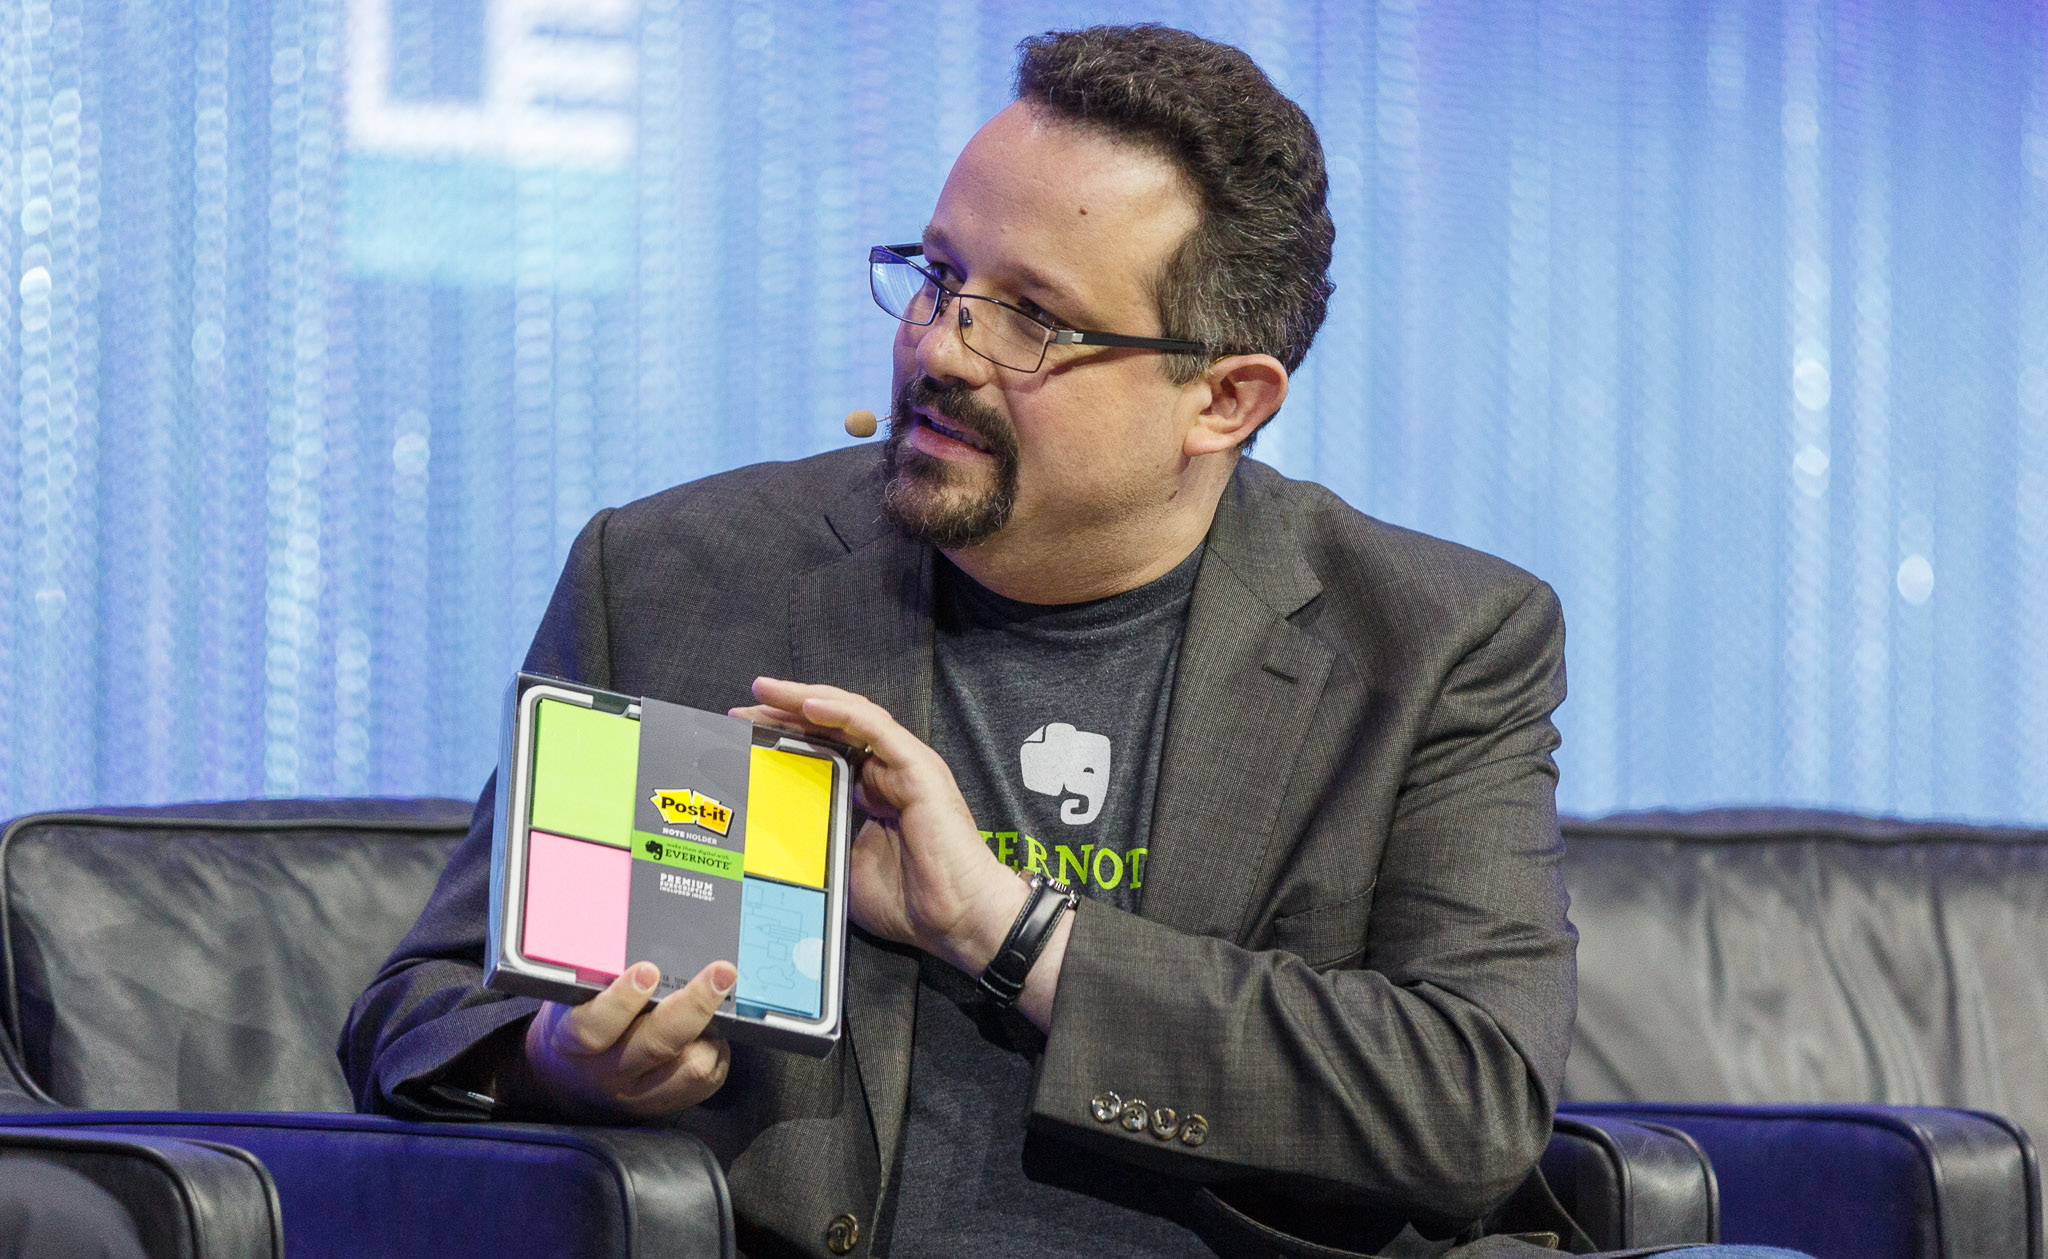 Evernote CEO Phil Libin speaking at LeWeb 2013